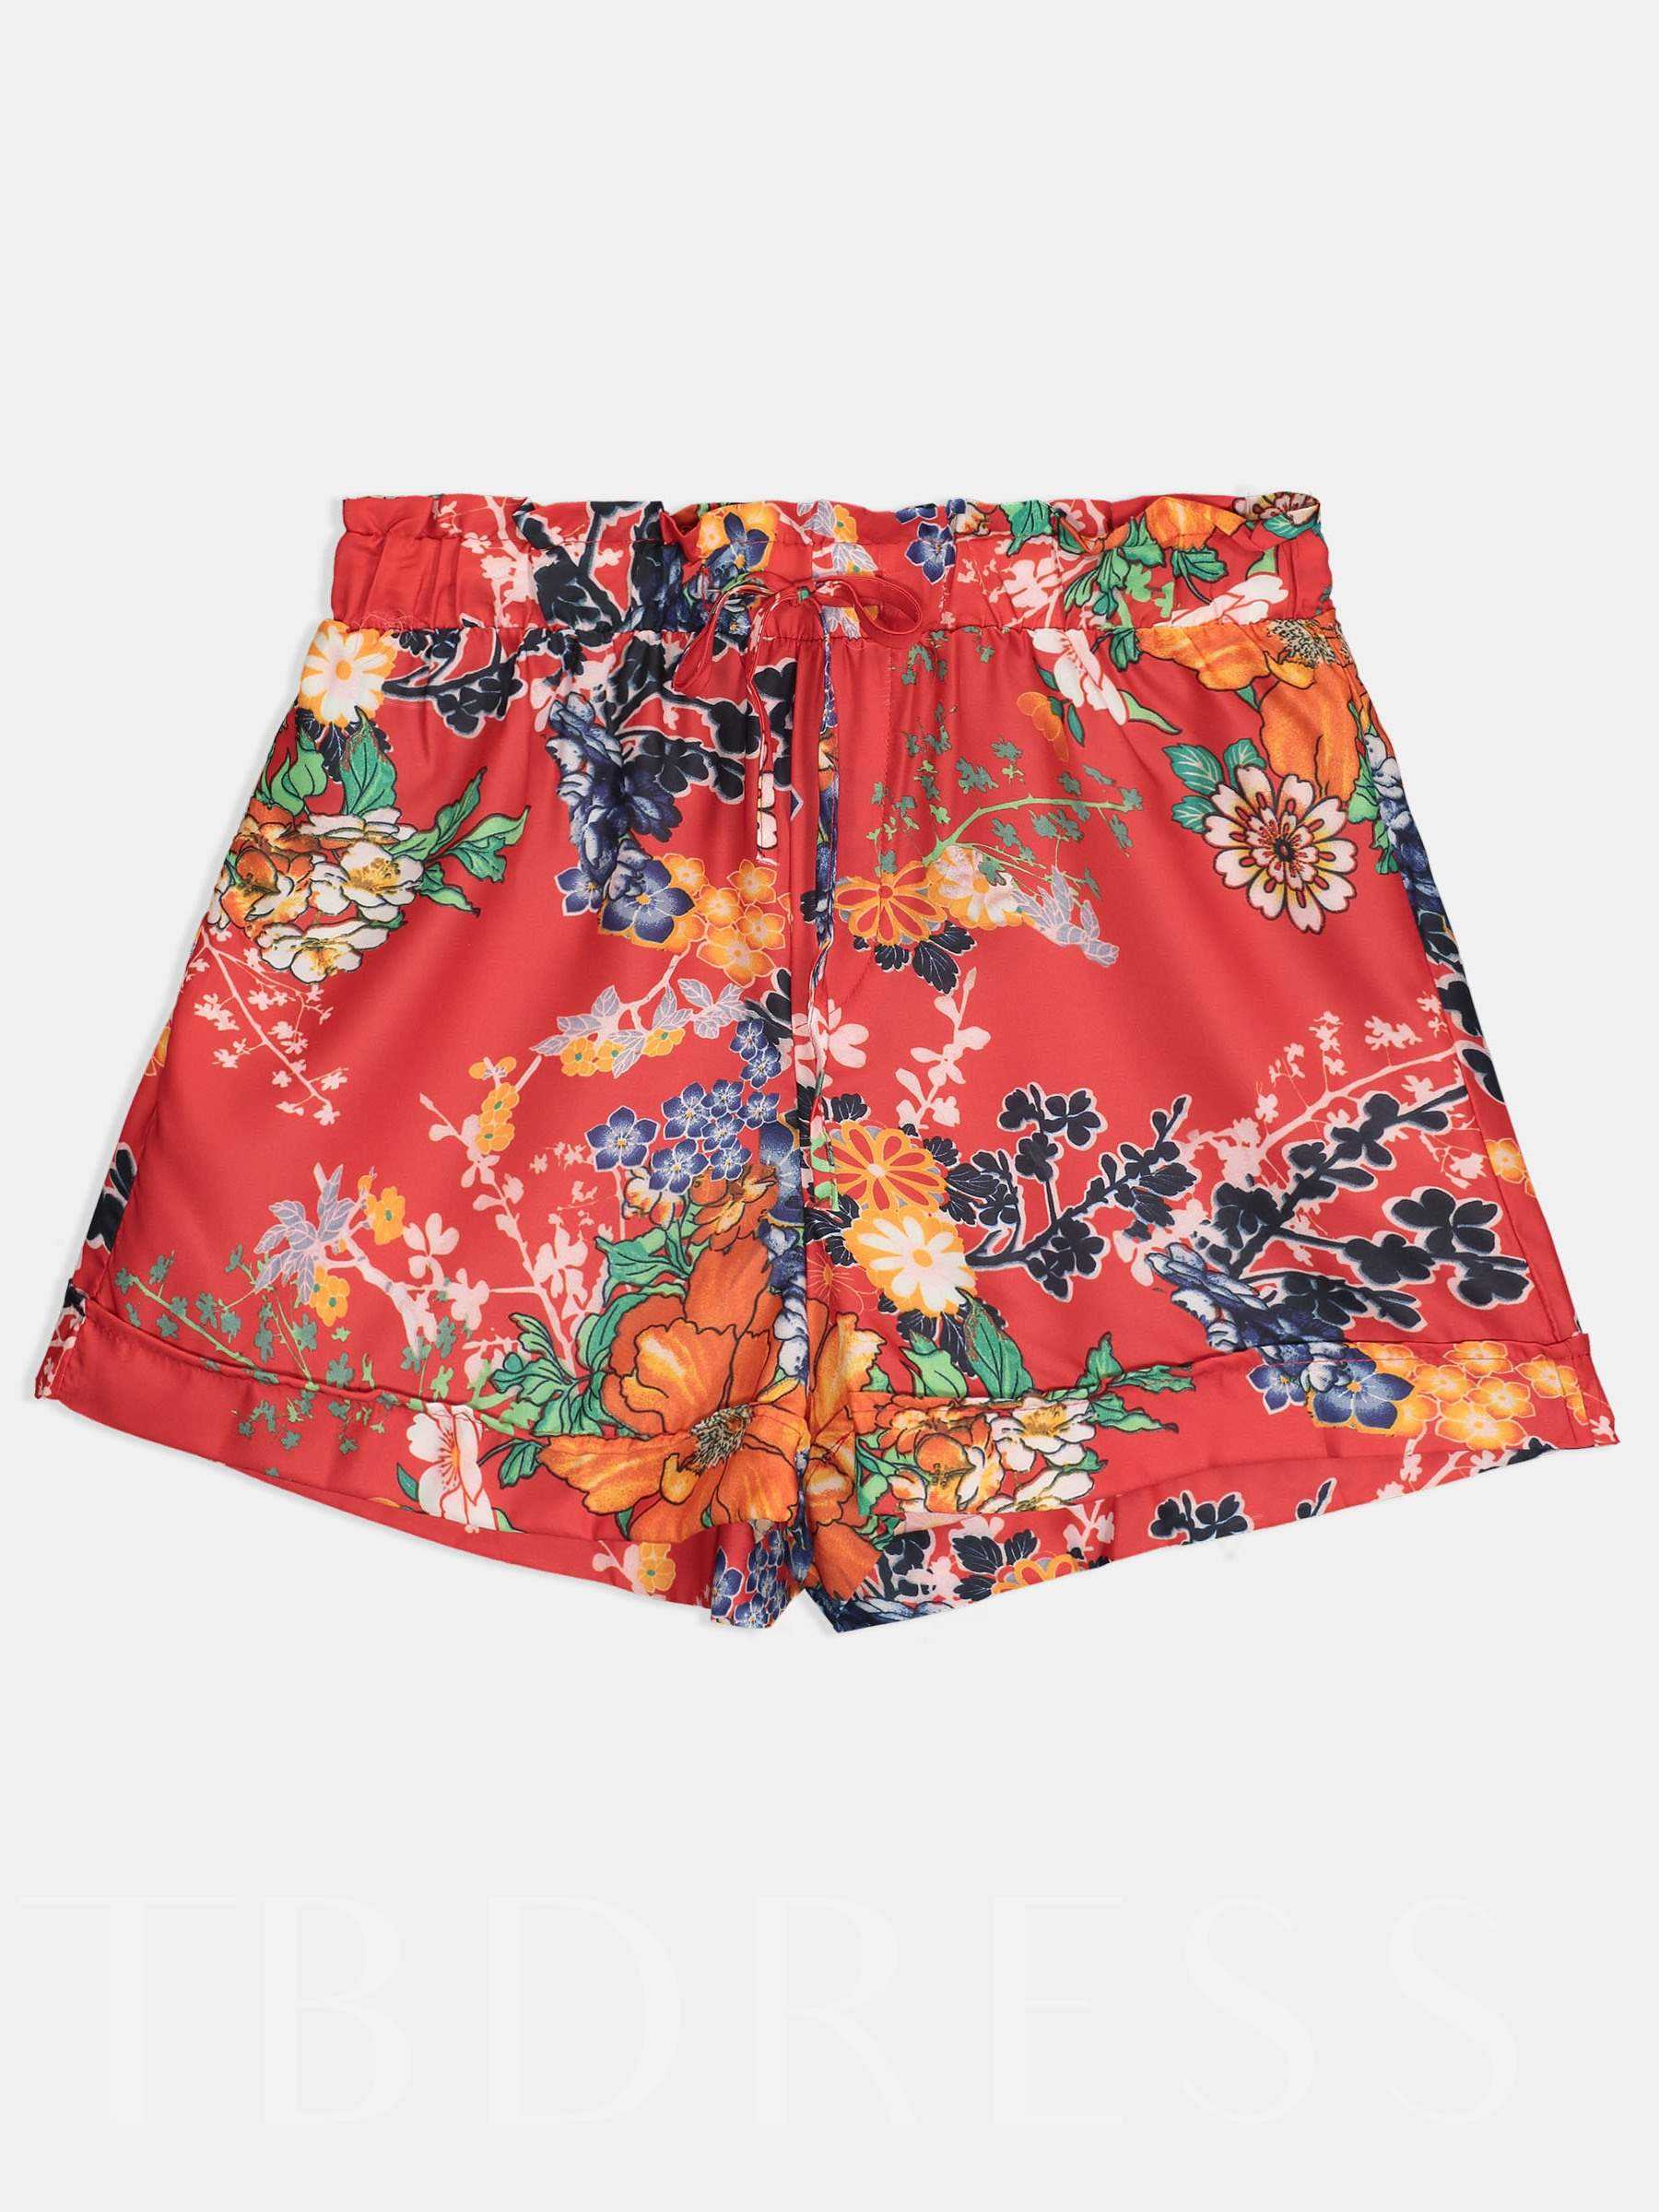 Buy Loose Straight Floral Print Lace-Up Women's Shorts, Summer, 13341726 for $10.66 in TBDress store